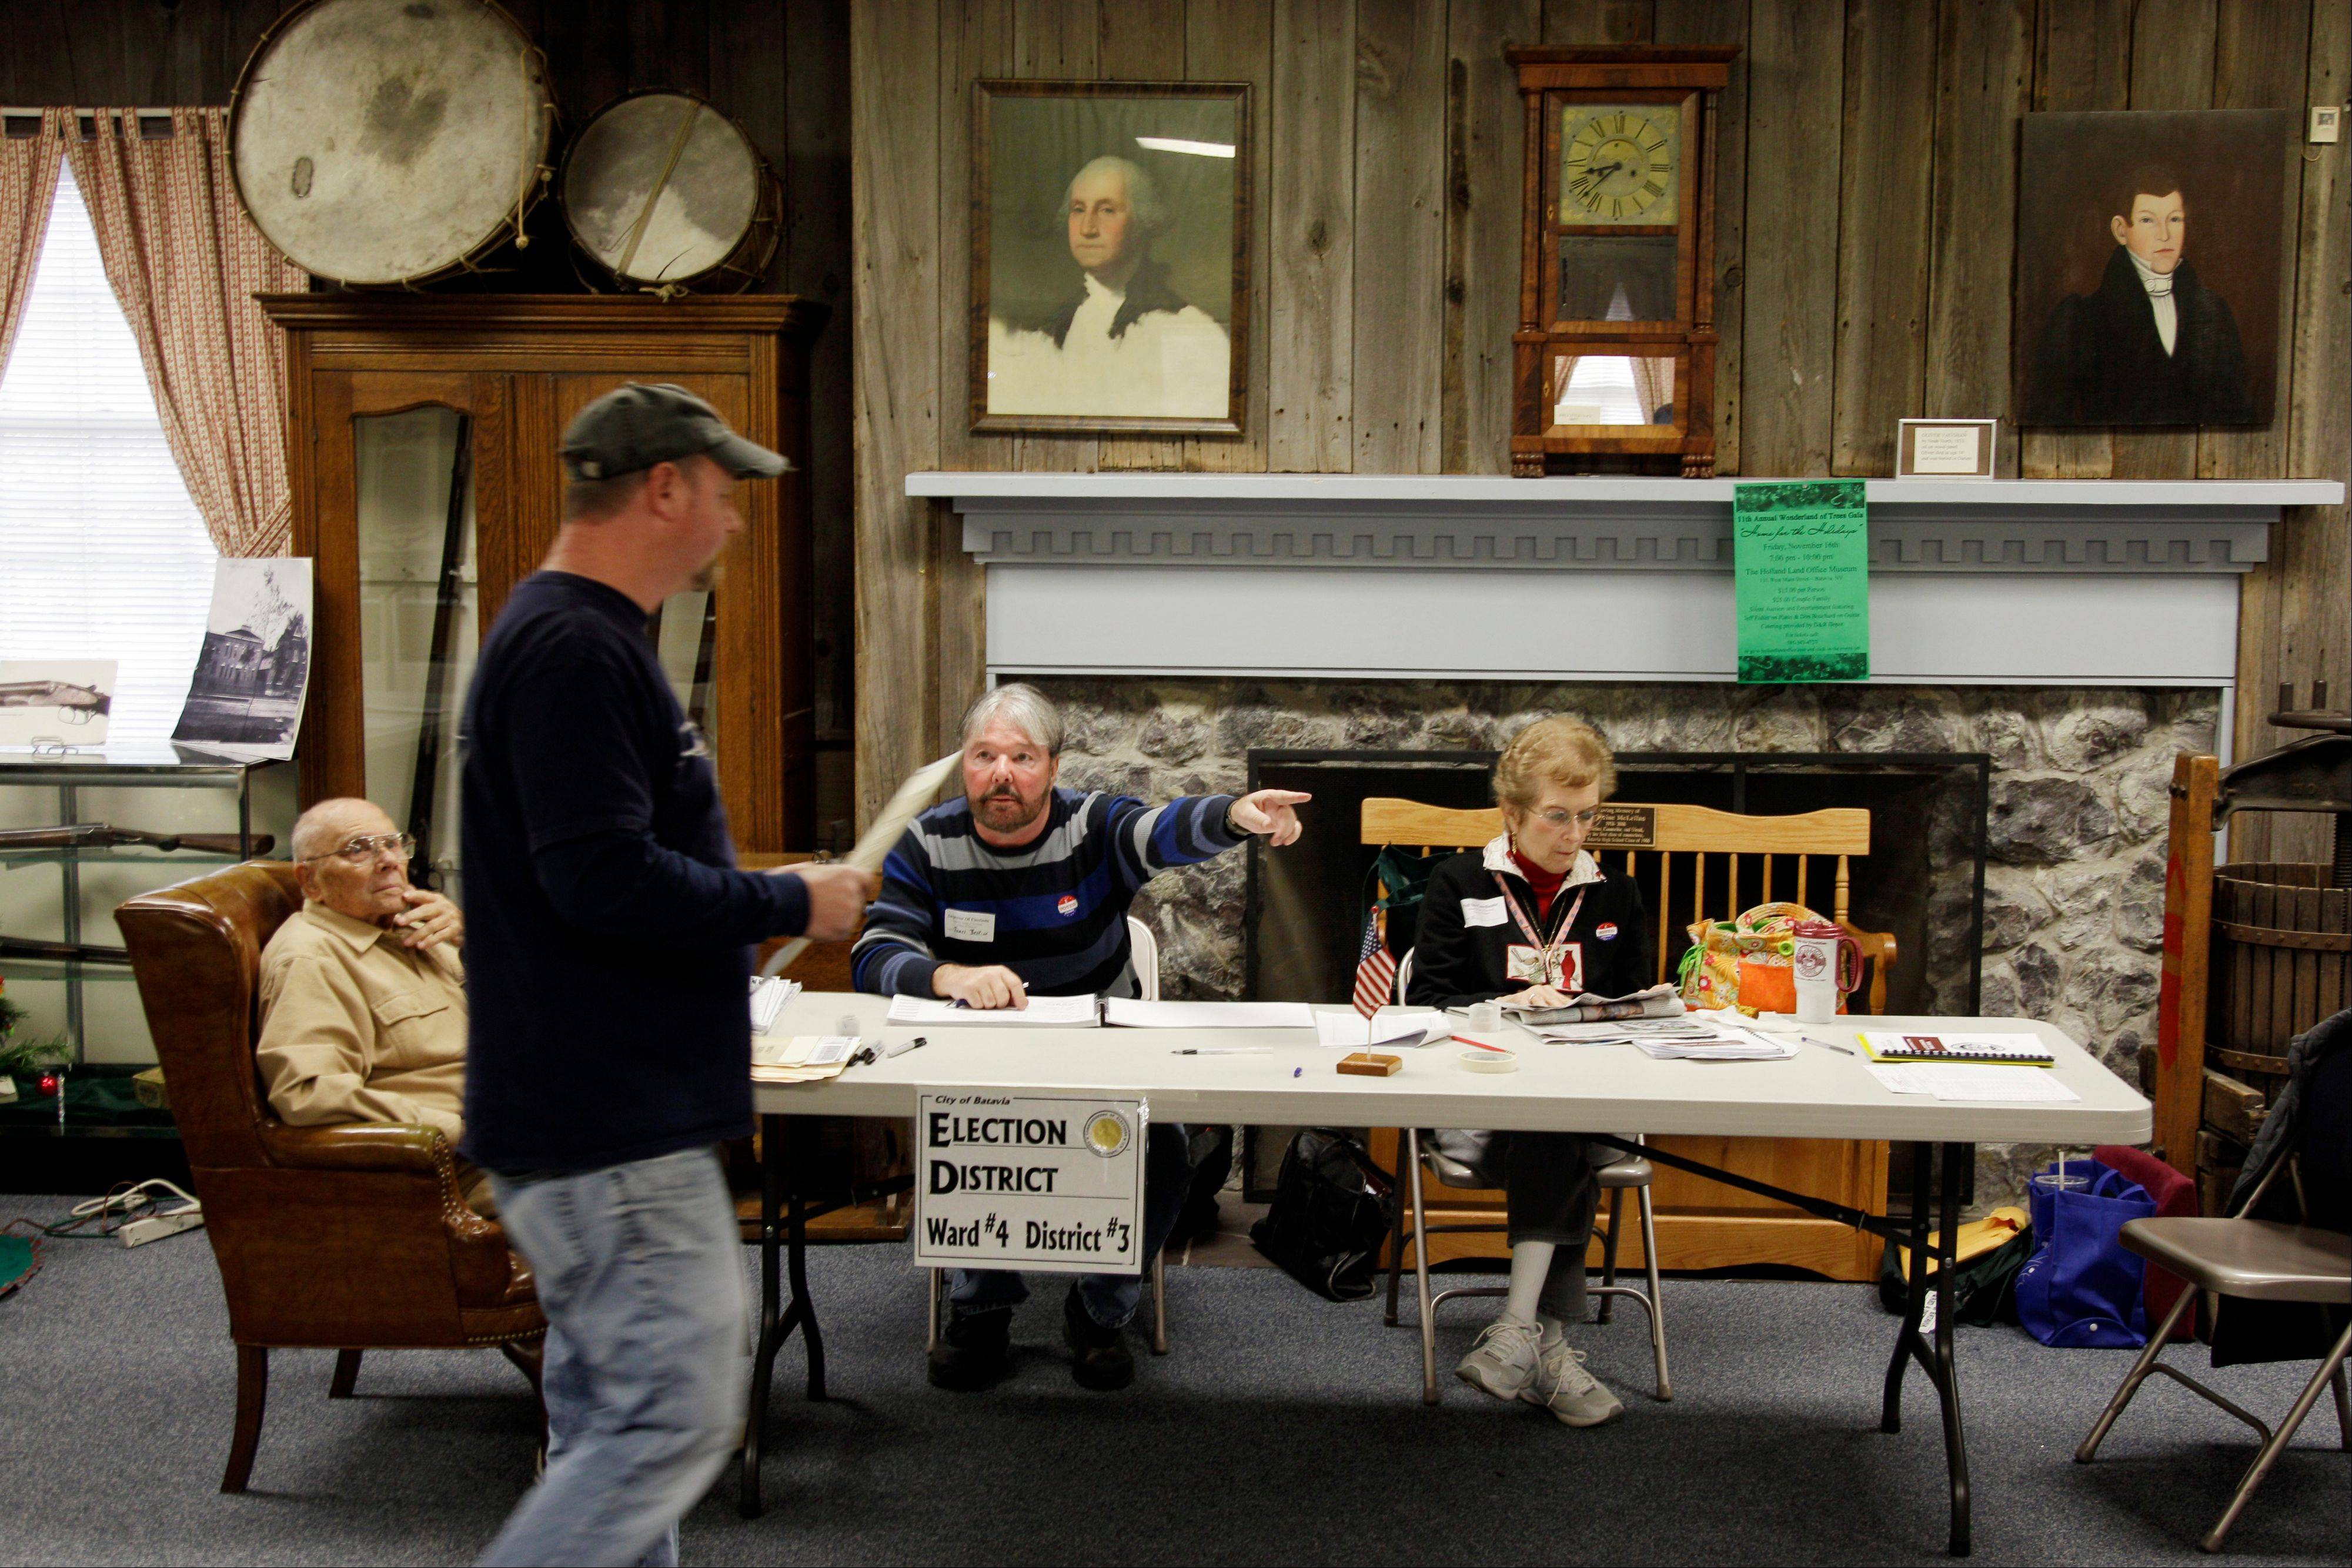 Polling Site Inspector James Bestine points out the ballot box to a voter on Election Day at the Holland Land Office Museum in Batavia, N.Y., Tuesday, Nov. 6, 2012.